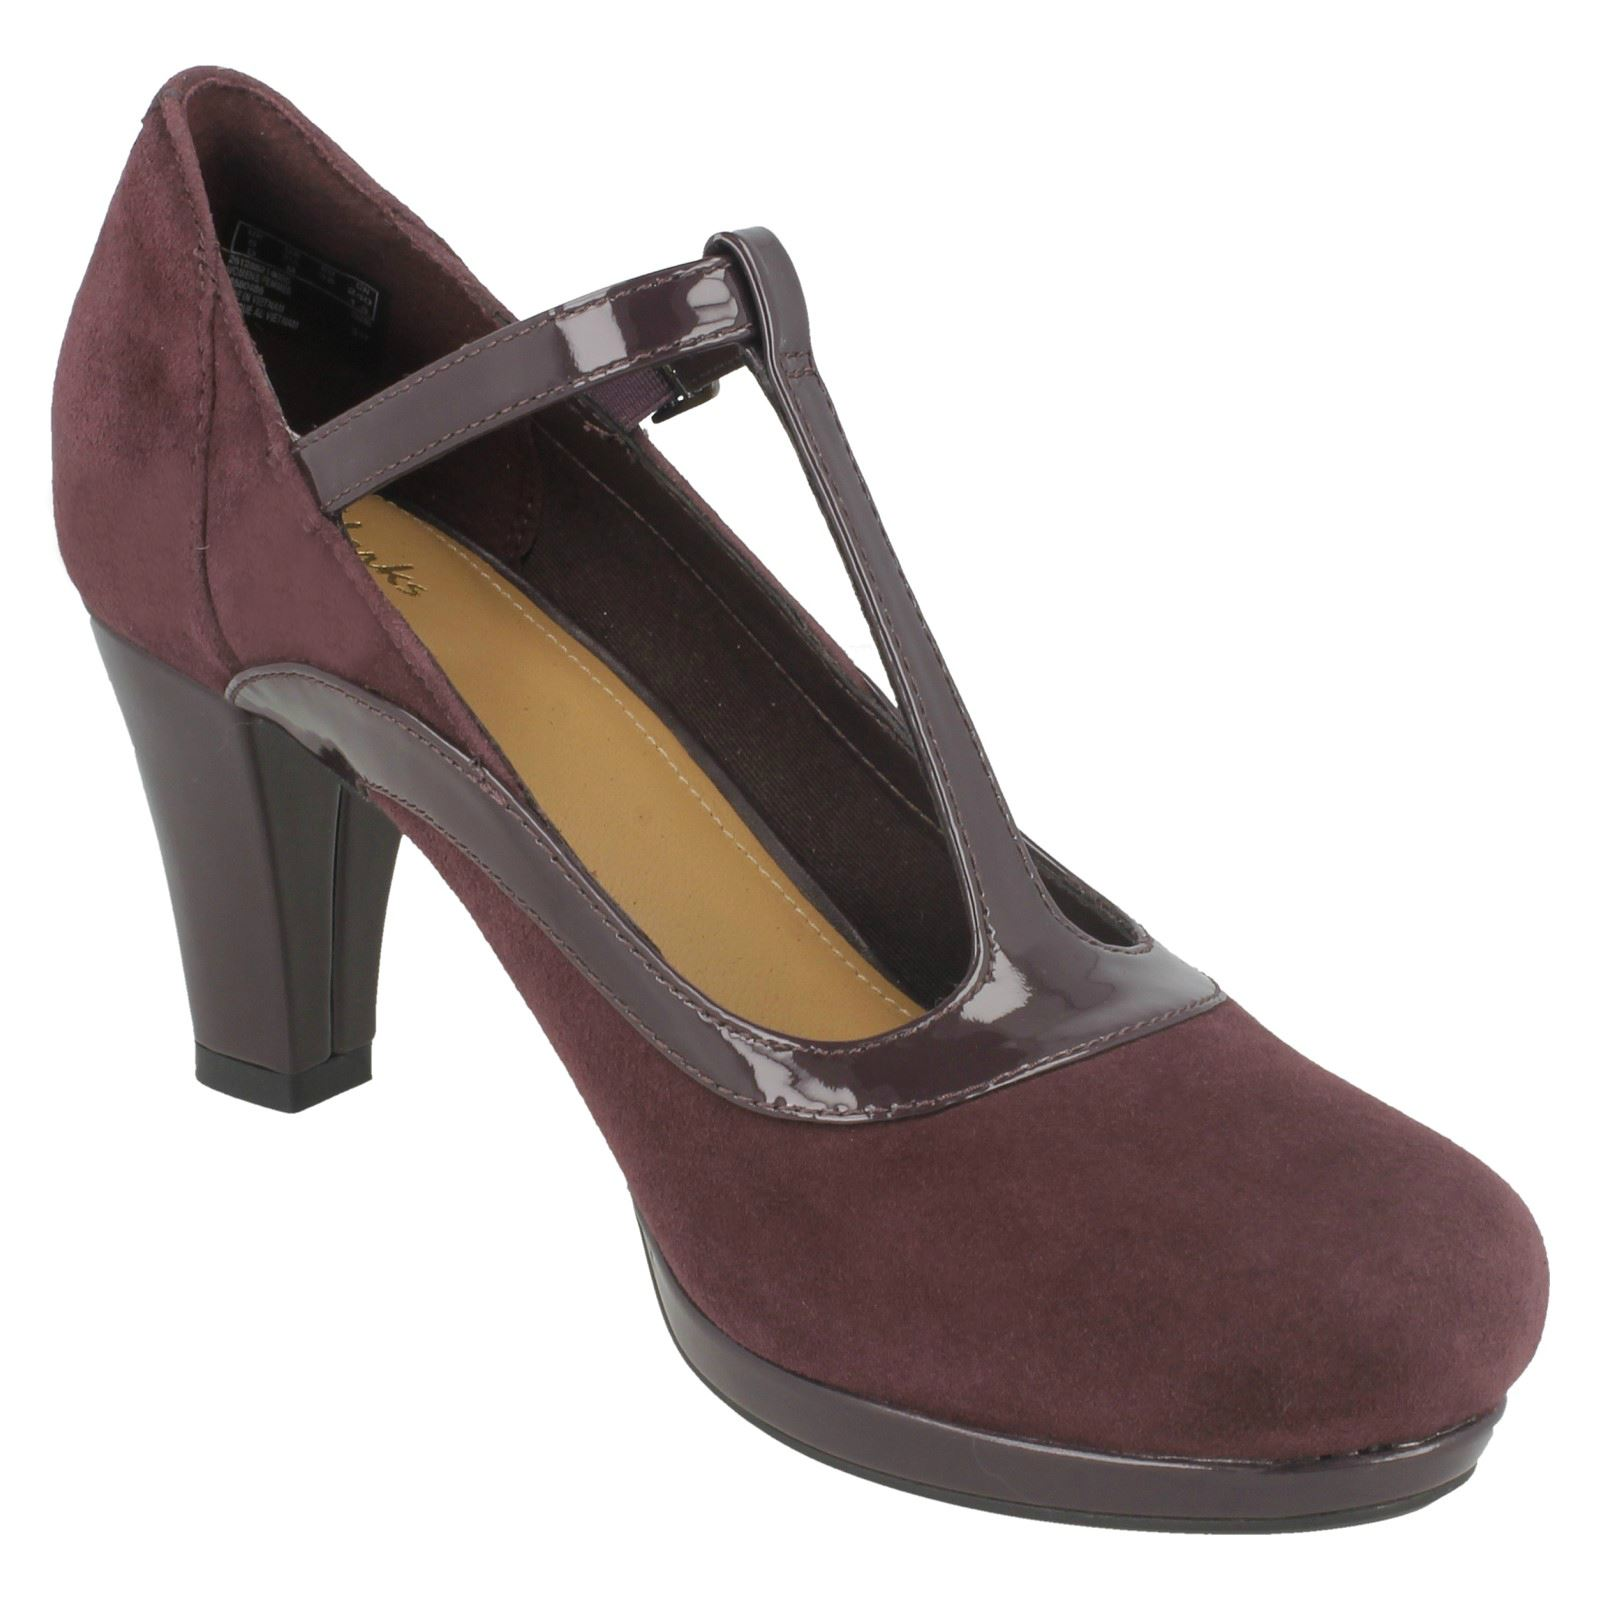 a08126a80eaaa Ladies-Clarks-Chorus-Pitch-Court-Heel-Shoes thumbnail 8